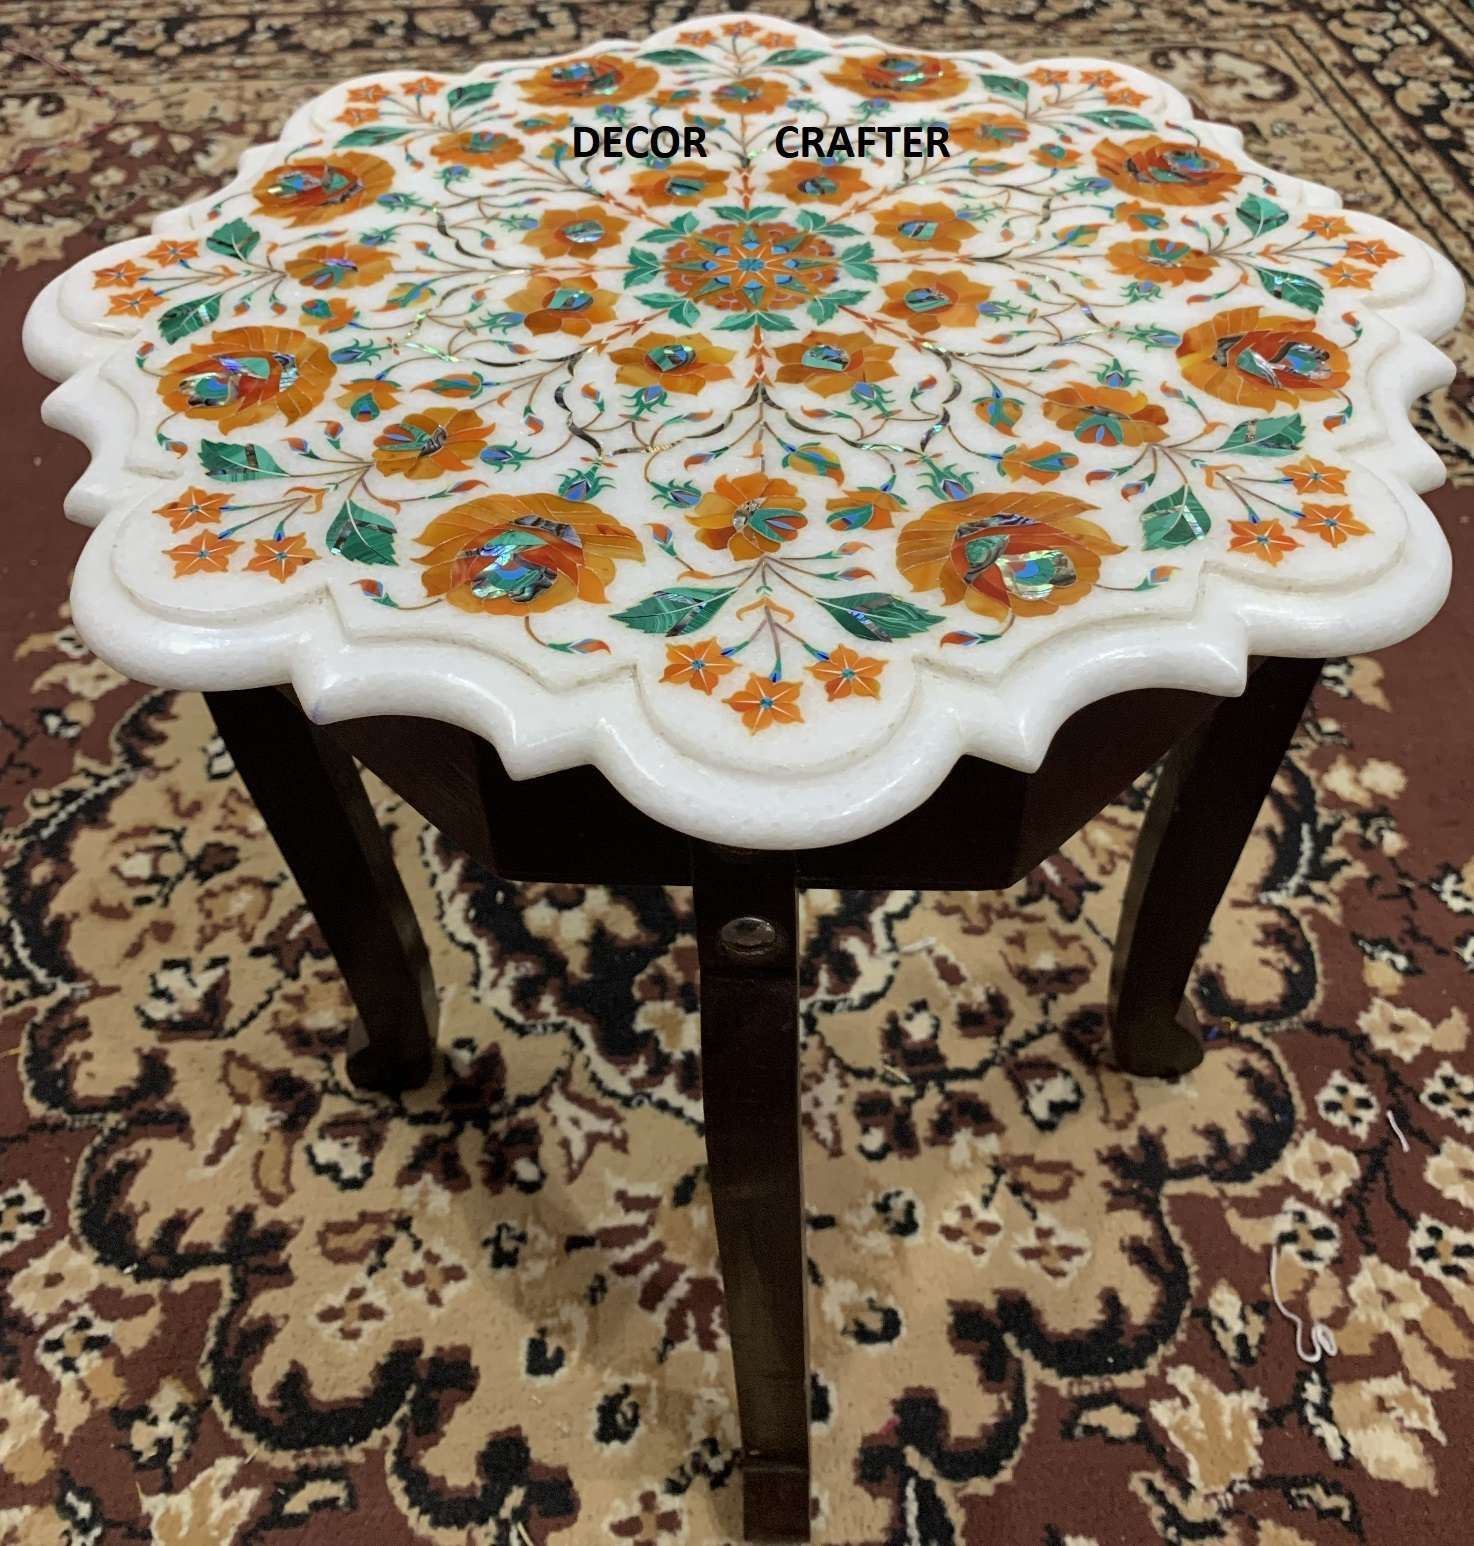 Stone Top Dining Table, Natural Stone Dining Table, Antique Stone Dining Table Having Carnelian Stone Inlay Work